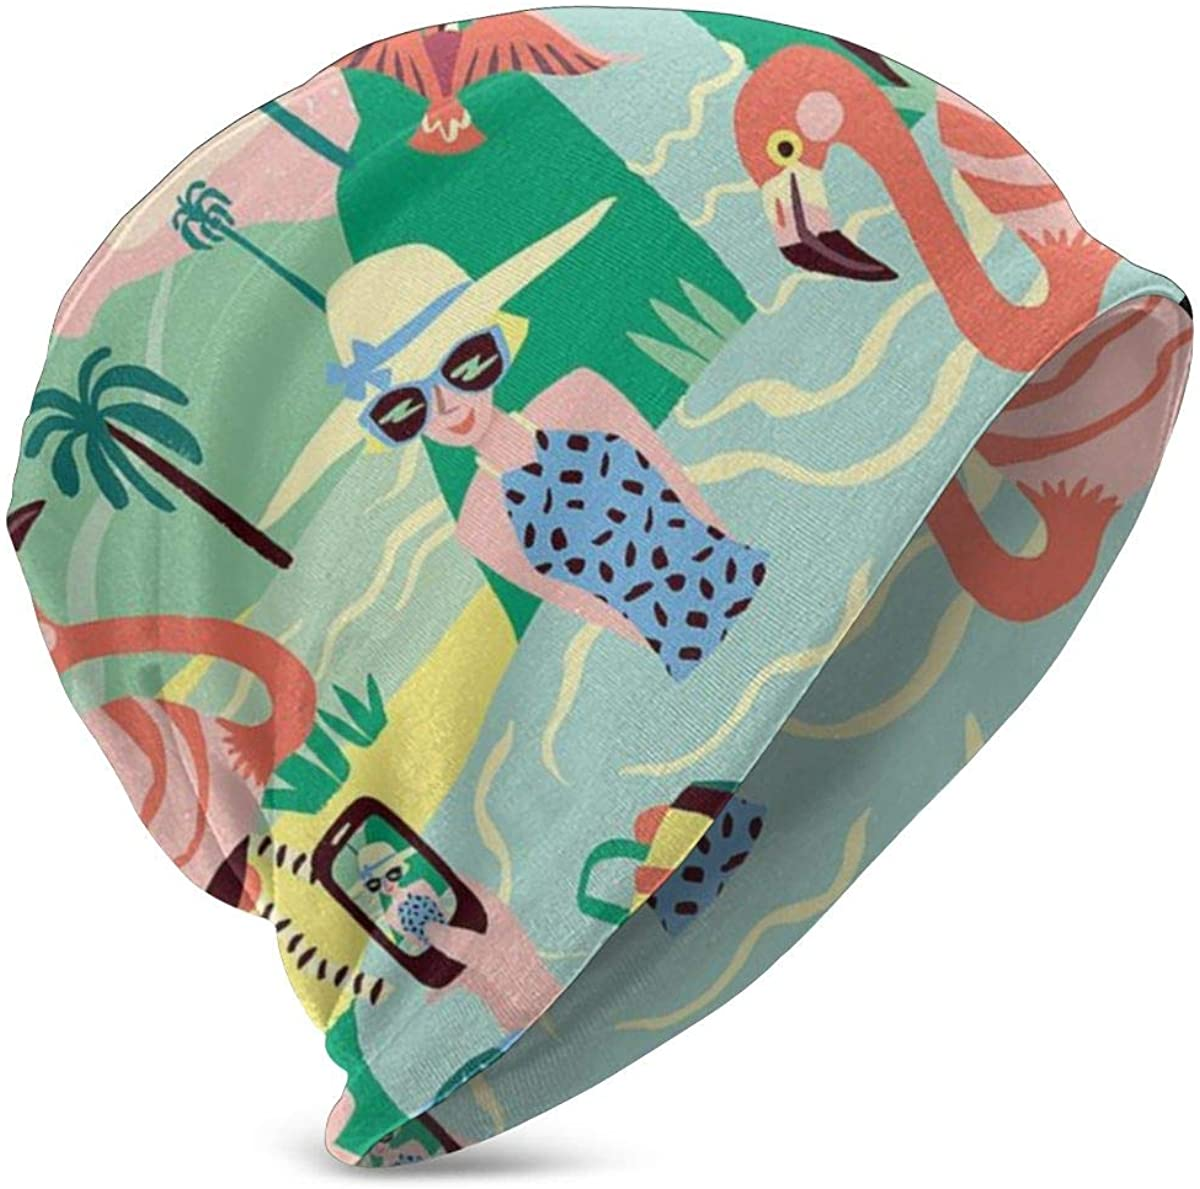 PETER HONG Teen Girls Boys Beanie Hat, Cuff Cap, Skull Hat, Dome Cap Daily Hat(Tropical Taking Pictures Birds Flamingo )